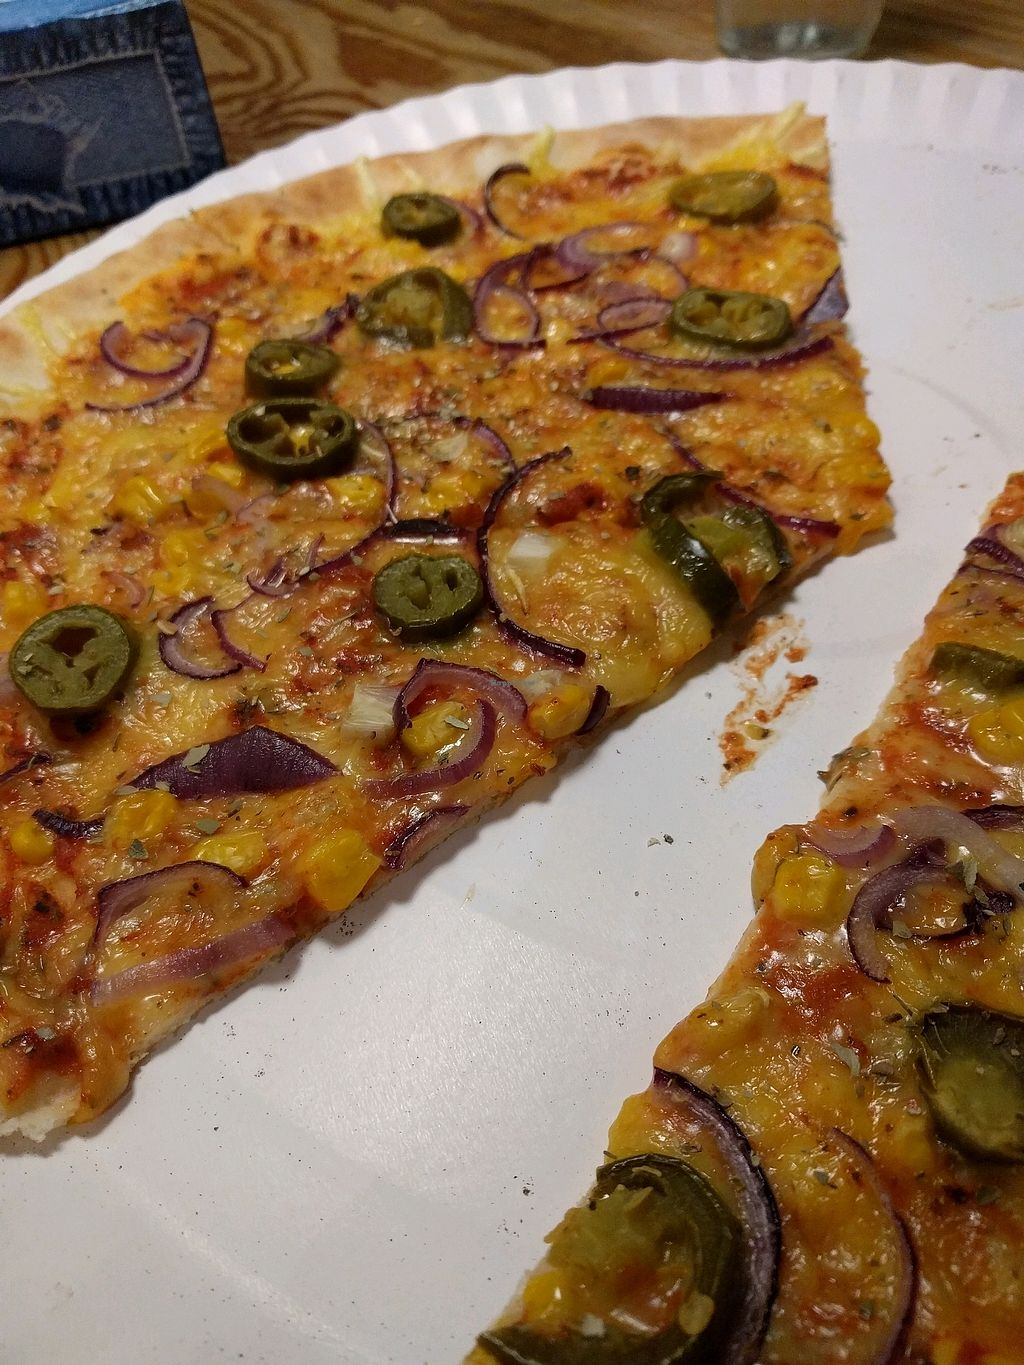 "Photo of Vege Pizza  by <a href=""/members/profile/Sezam"">Sezam</a> <br/>vegan jalapeno <br/> December 4, 2017  - <a href='/contact/abuse/image/72098/332318'>Report</a>"